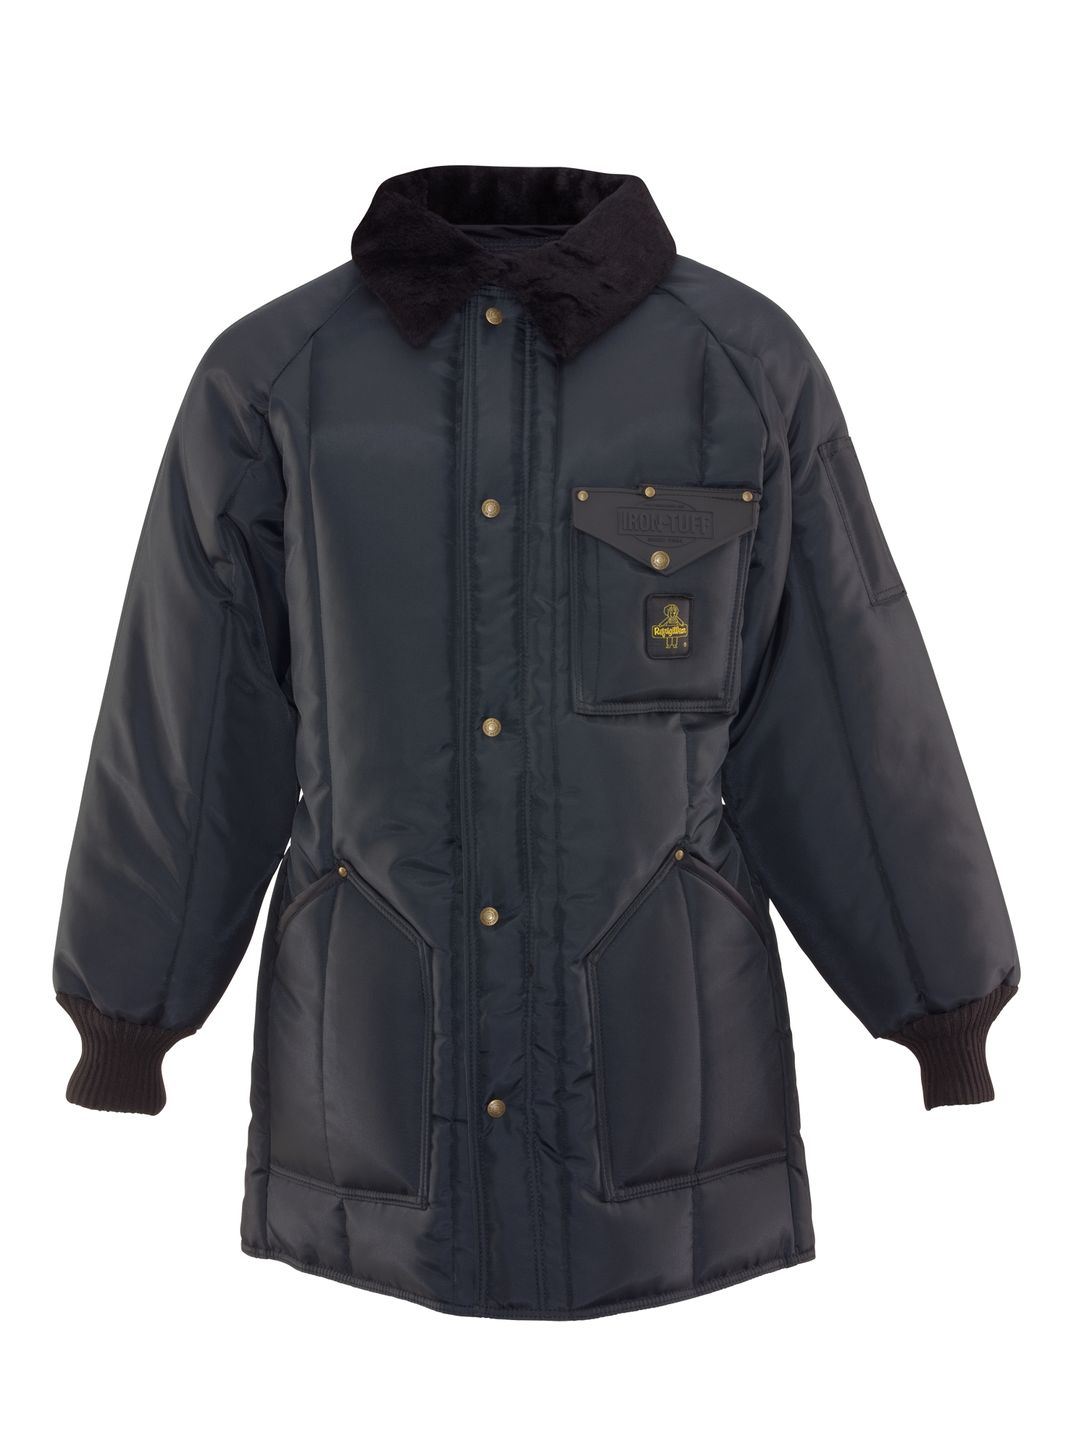 refrigiwear-0361-iron-tuff-winterseal-cold-weather-work-coat-thigh-length-front-view.jpg